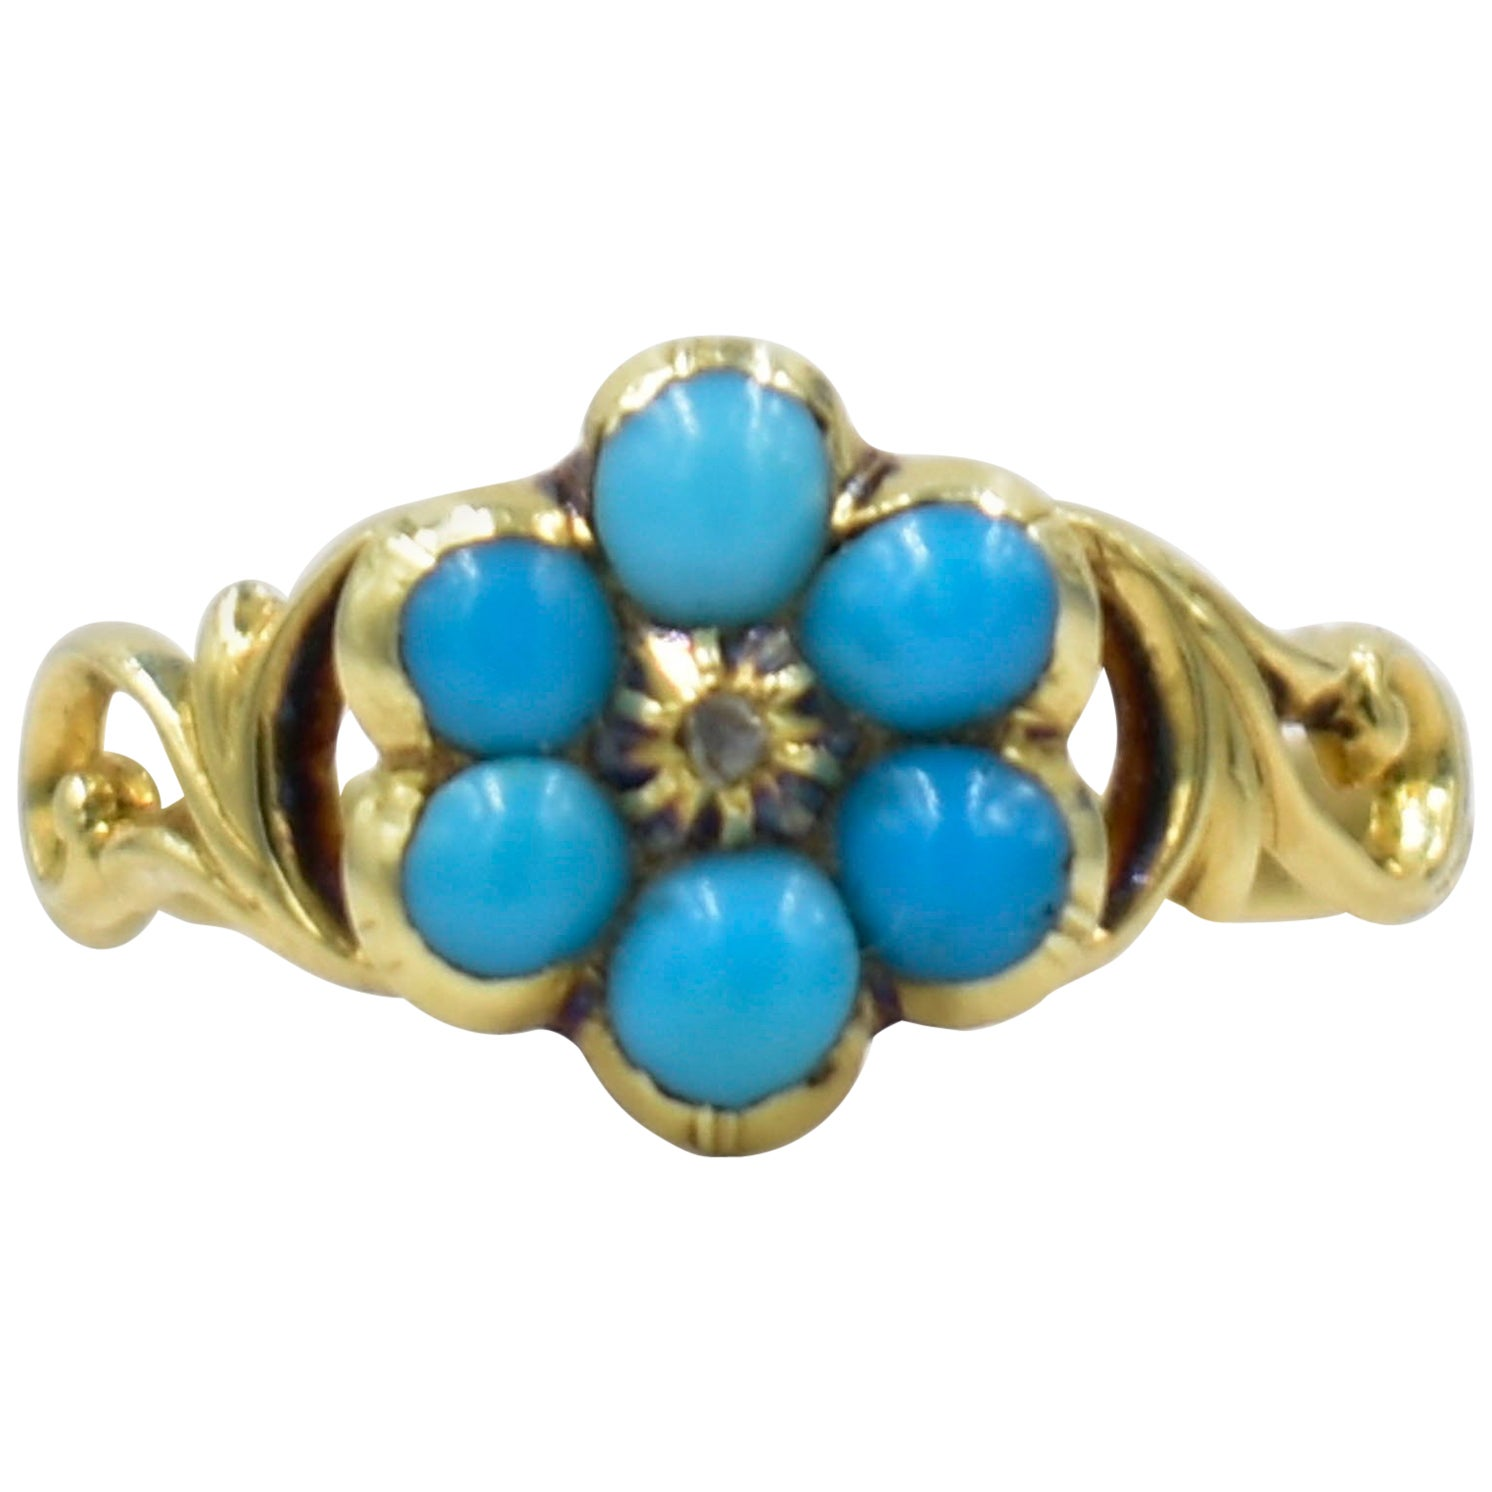 Antique Turquoise and Gold Forget Me Not Ring